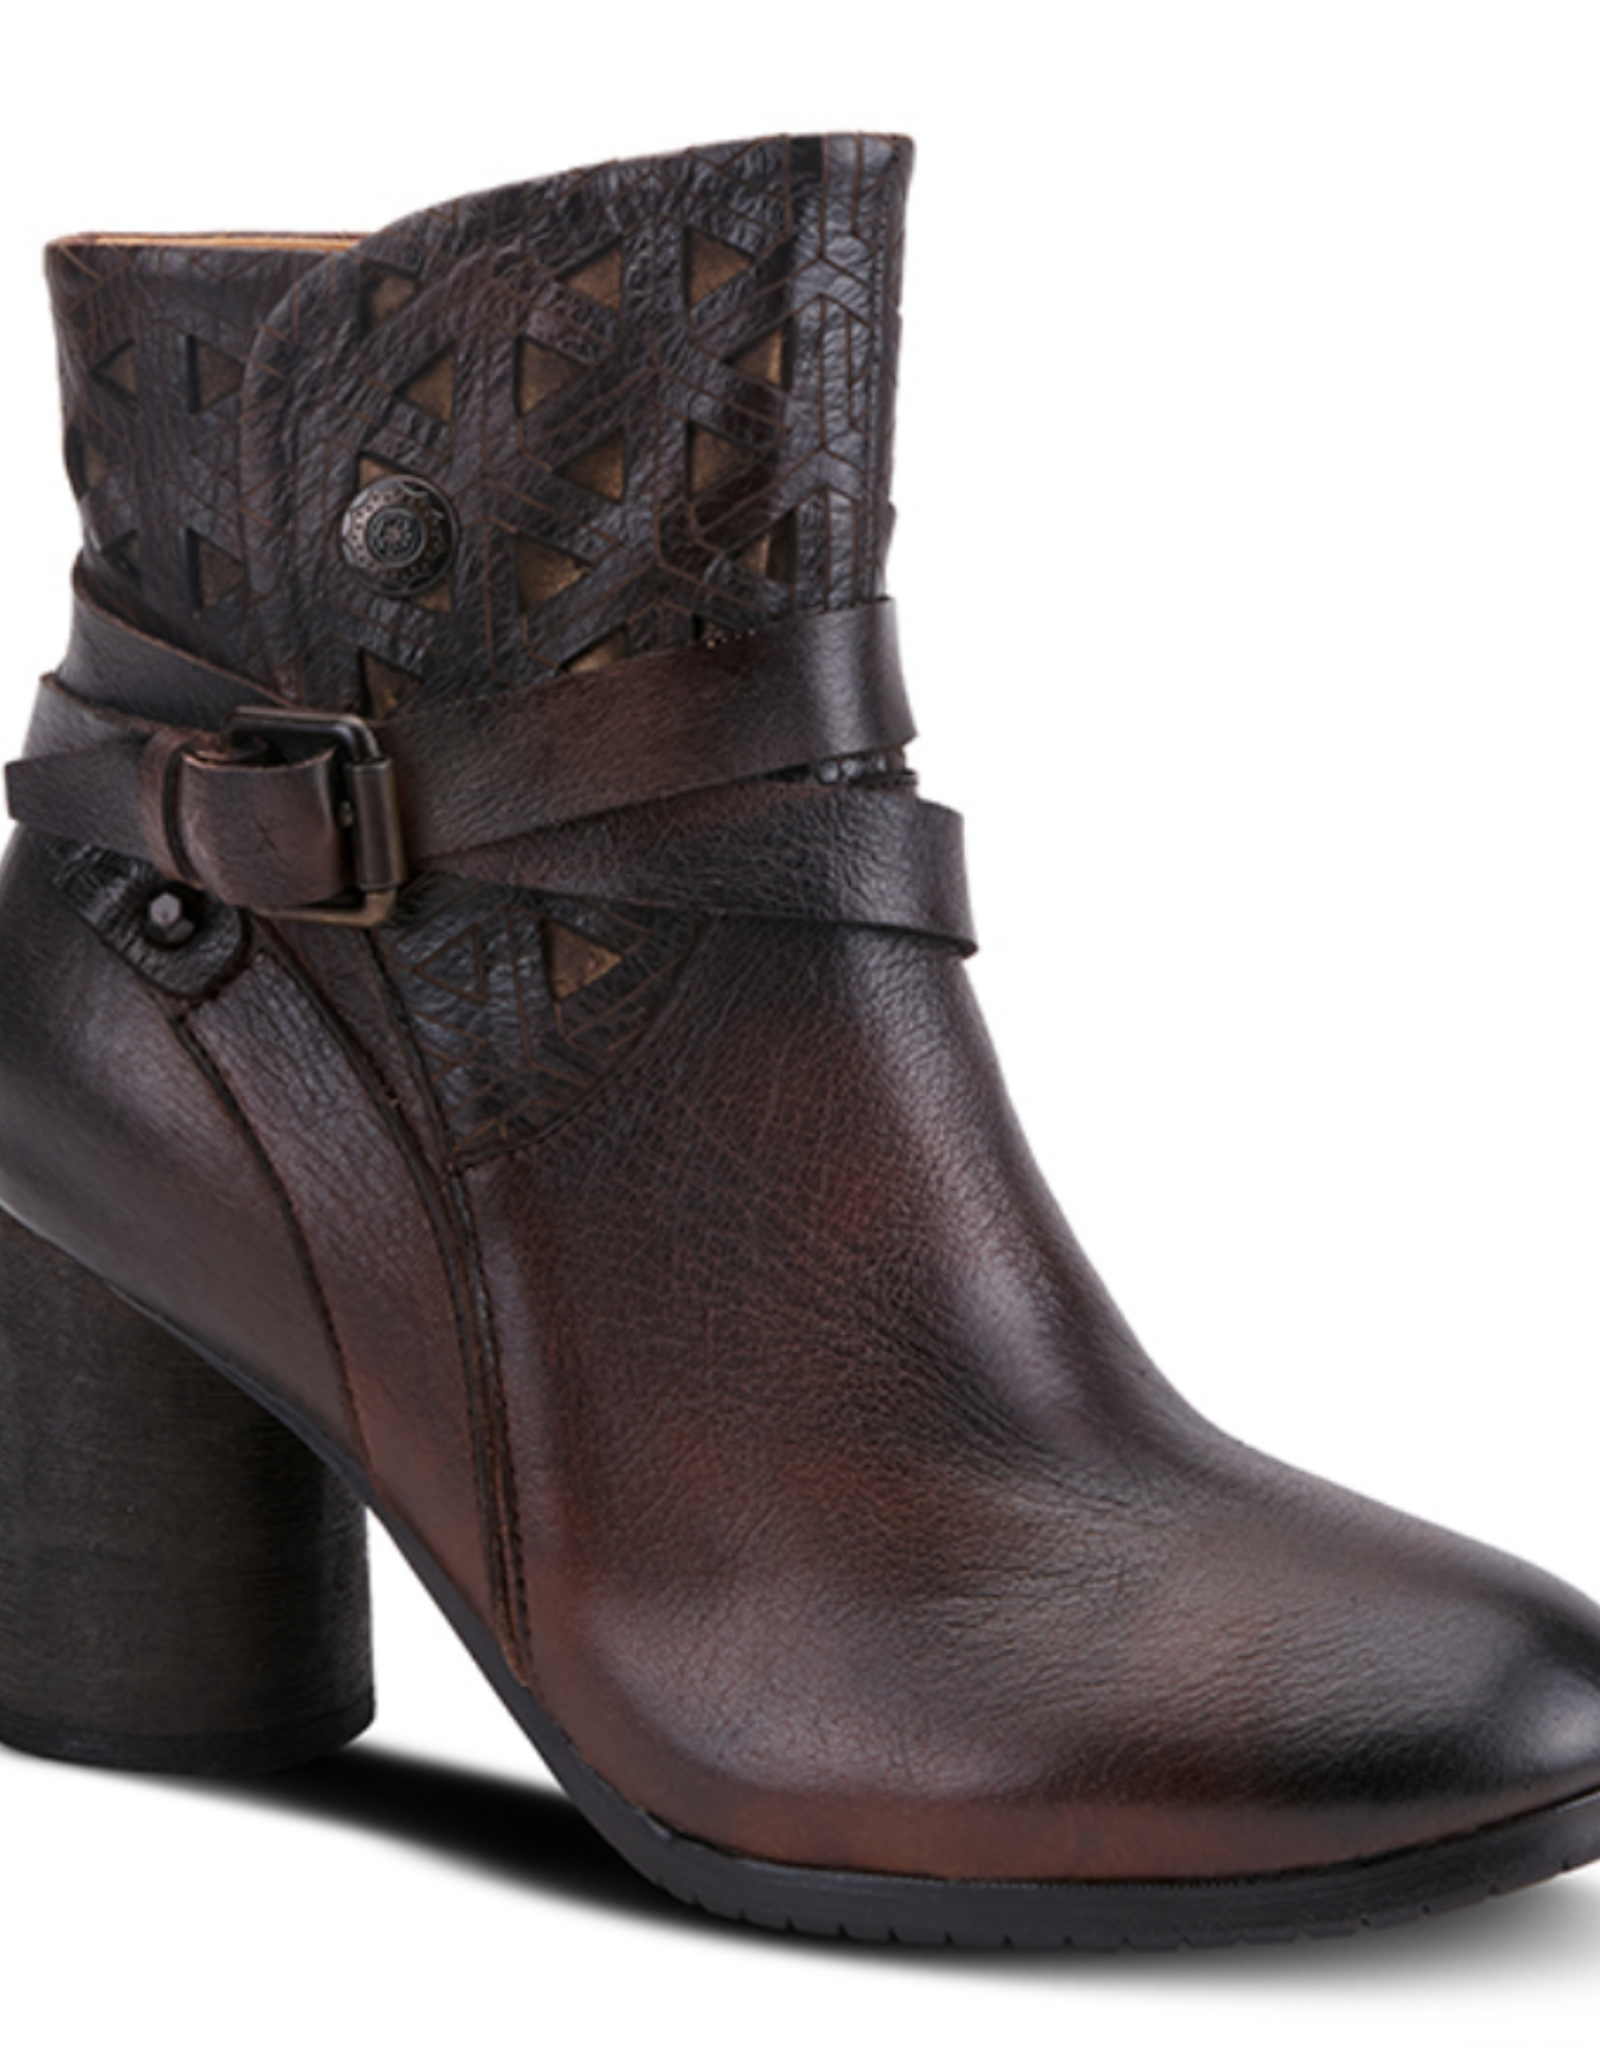 Madonna brown leather boot